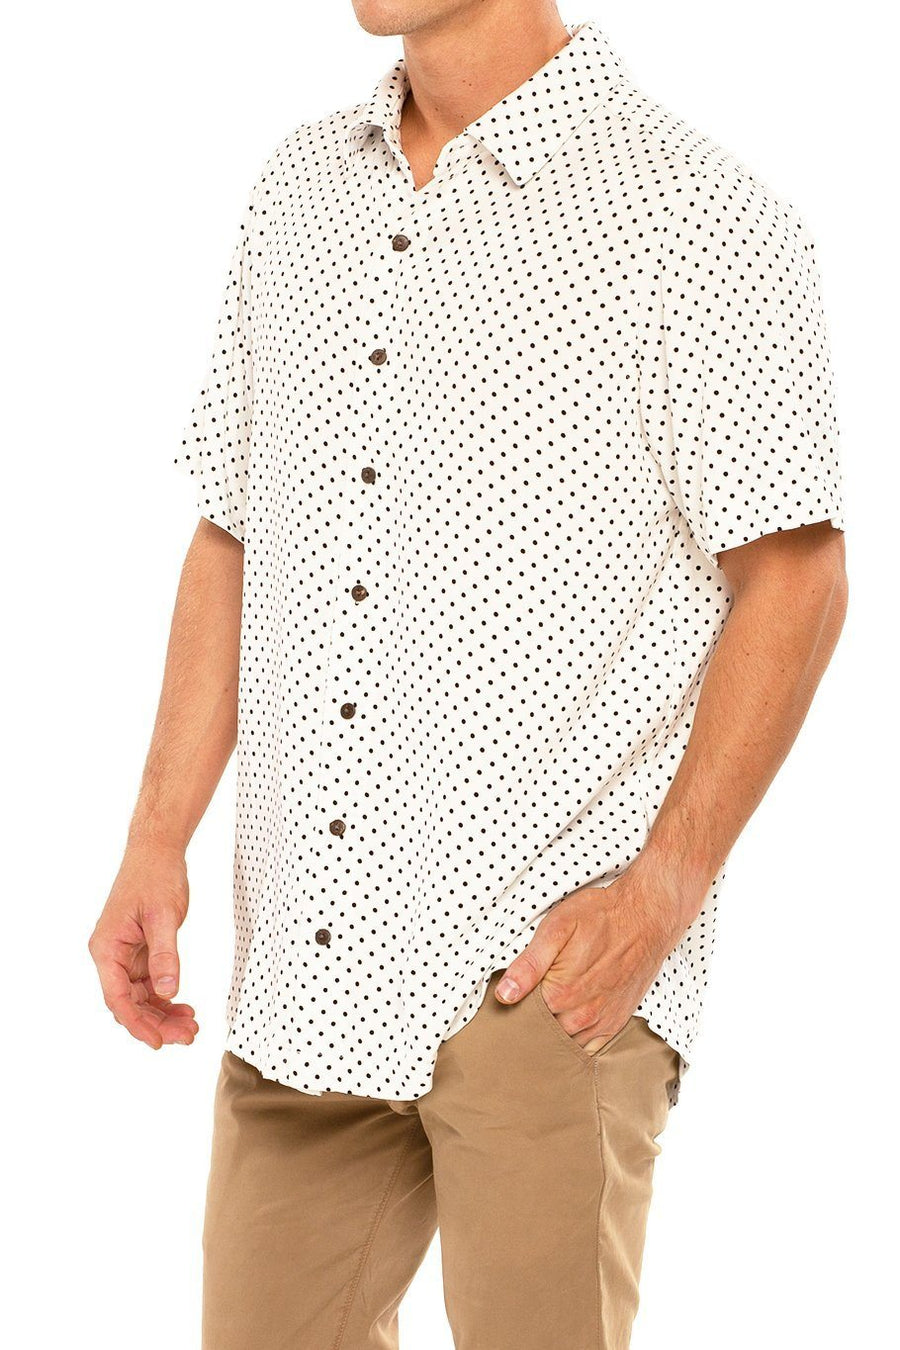 Shore Men's Camp Shirt - Polka Dot - Shore